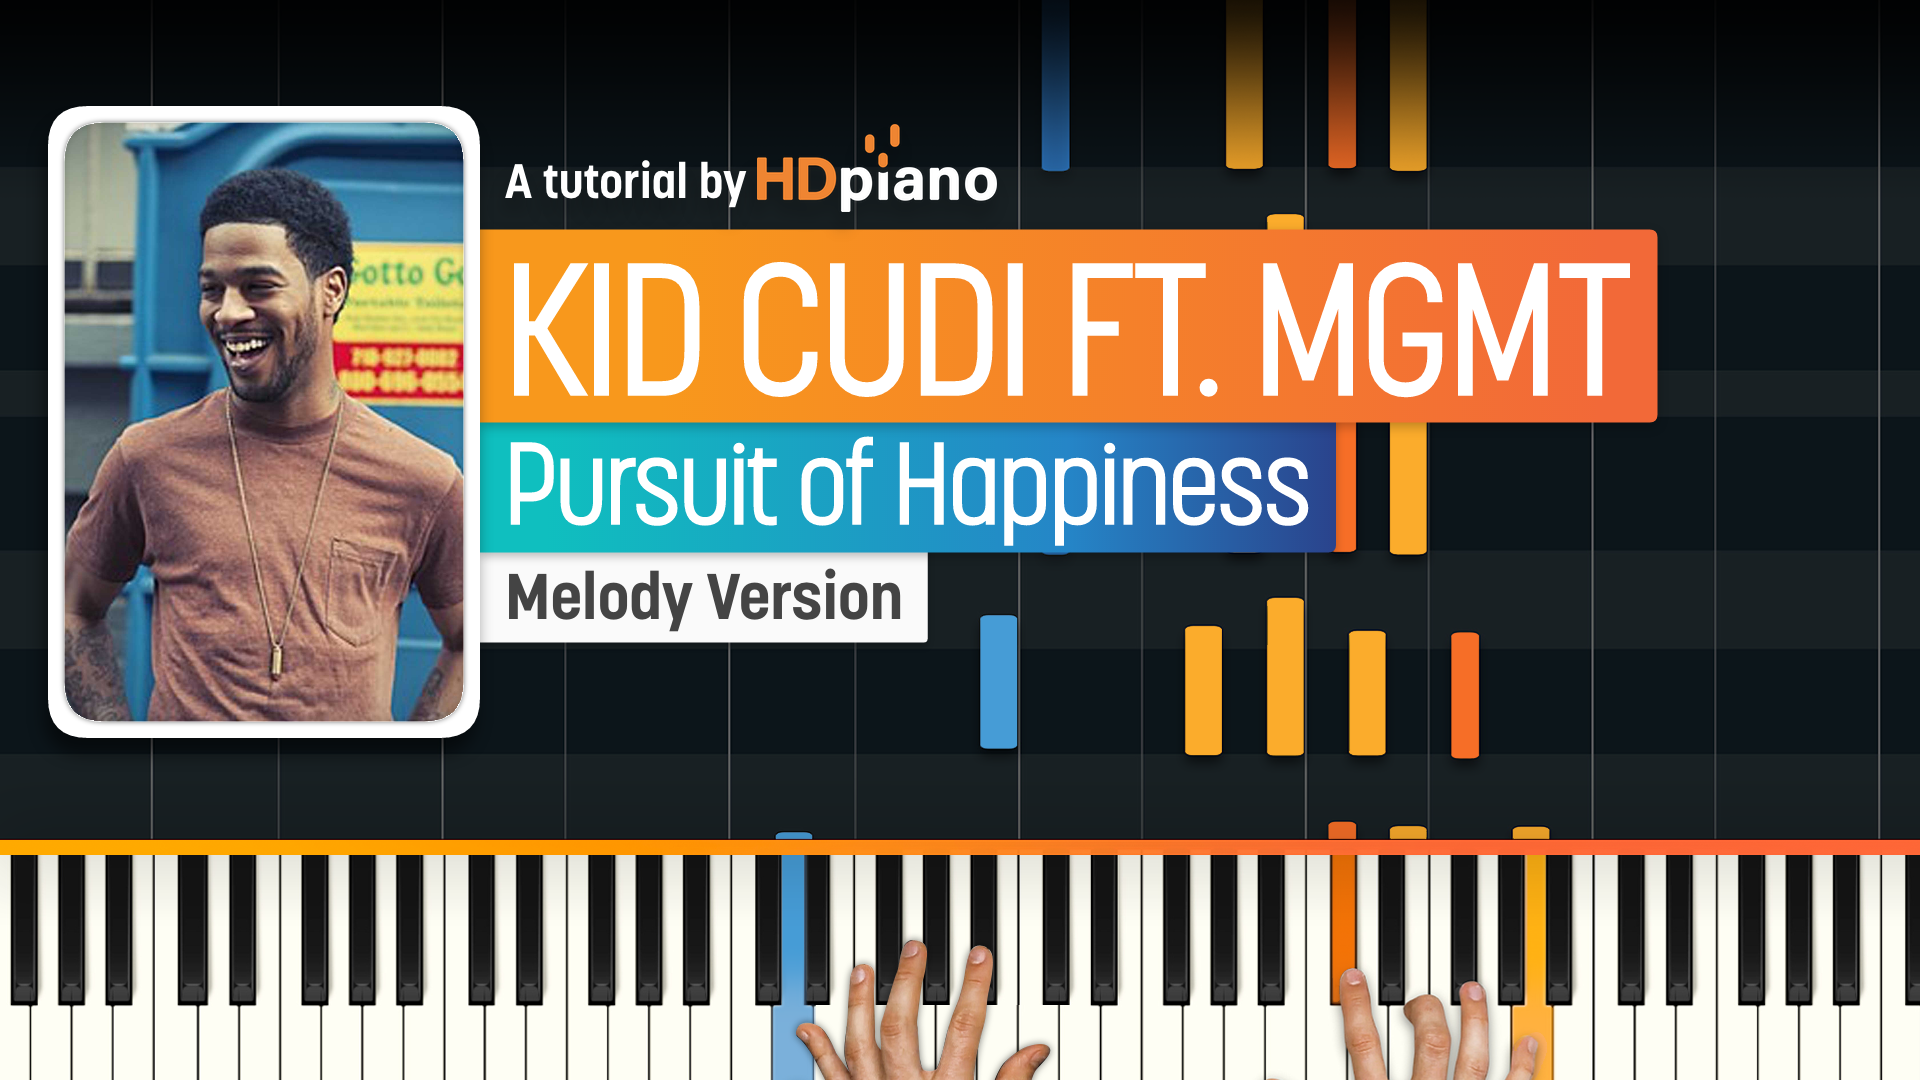 Pursuit of Happiness – HDpiano